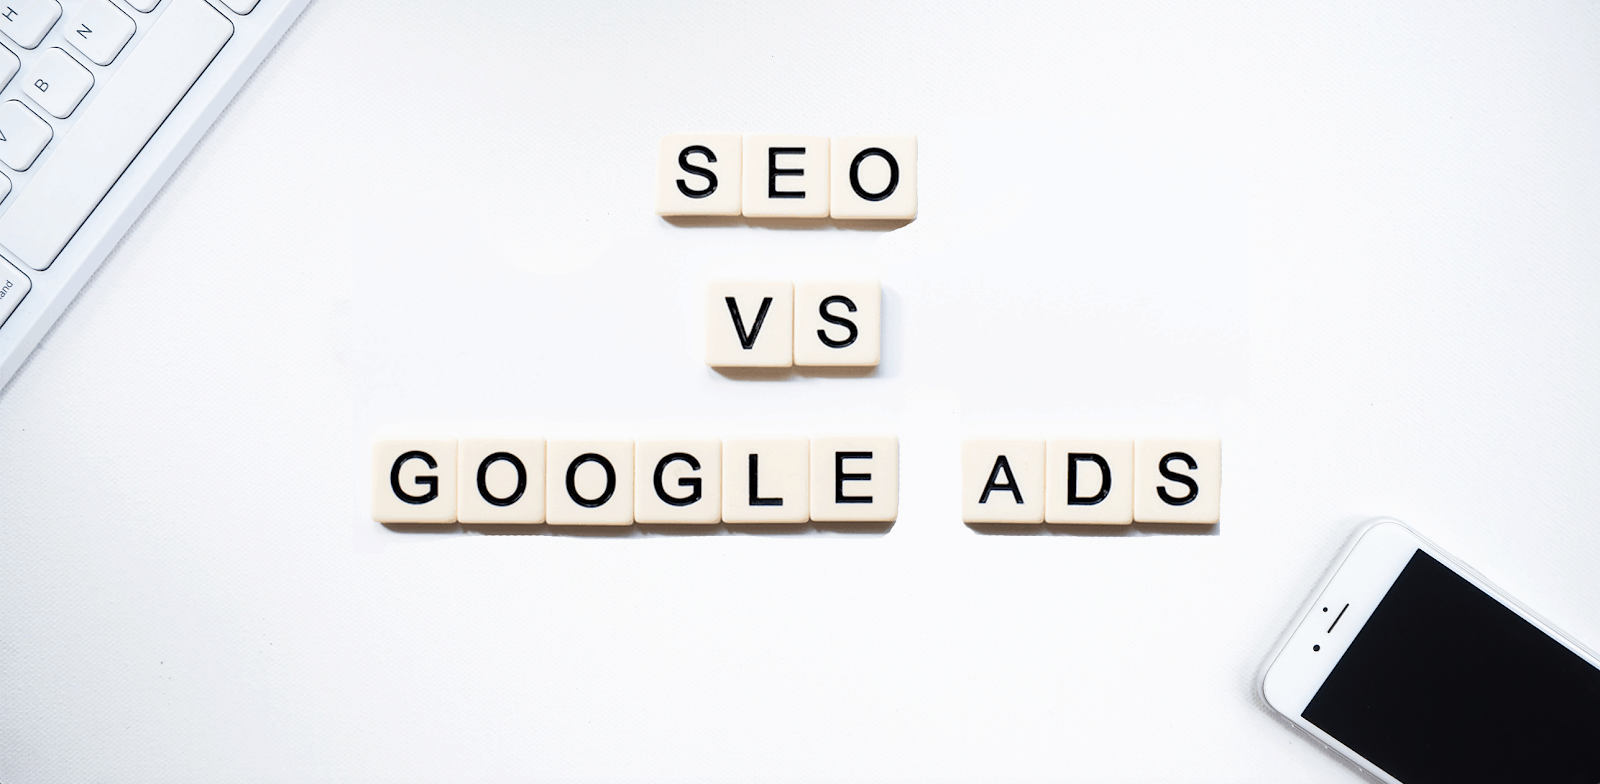 Should You Invest in Google Ads or SEO to Drive More Traffic to Your Website?